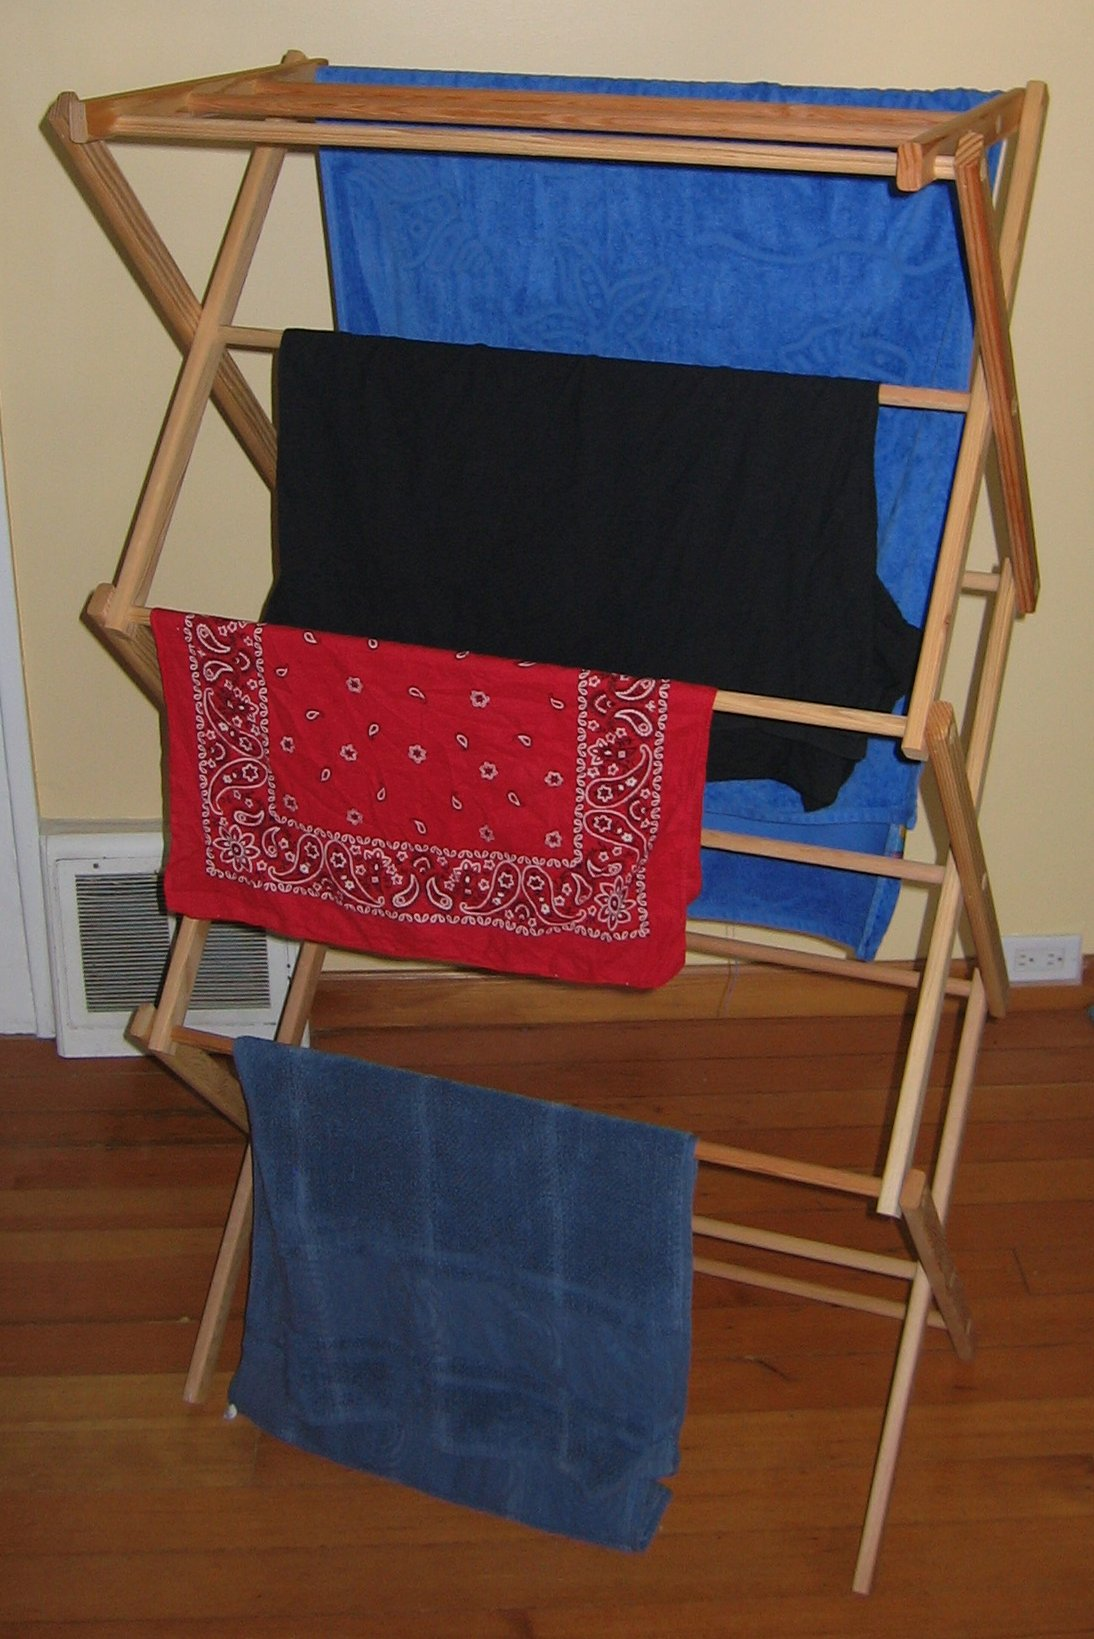 Clothes horse wooden